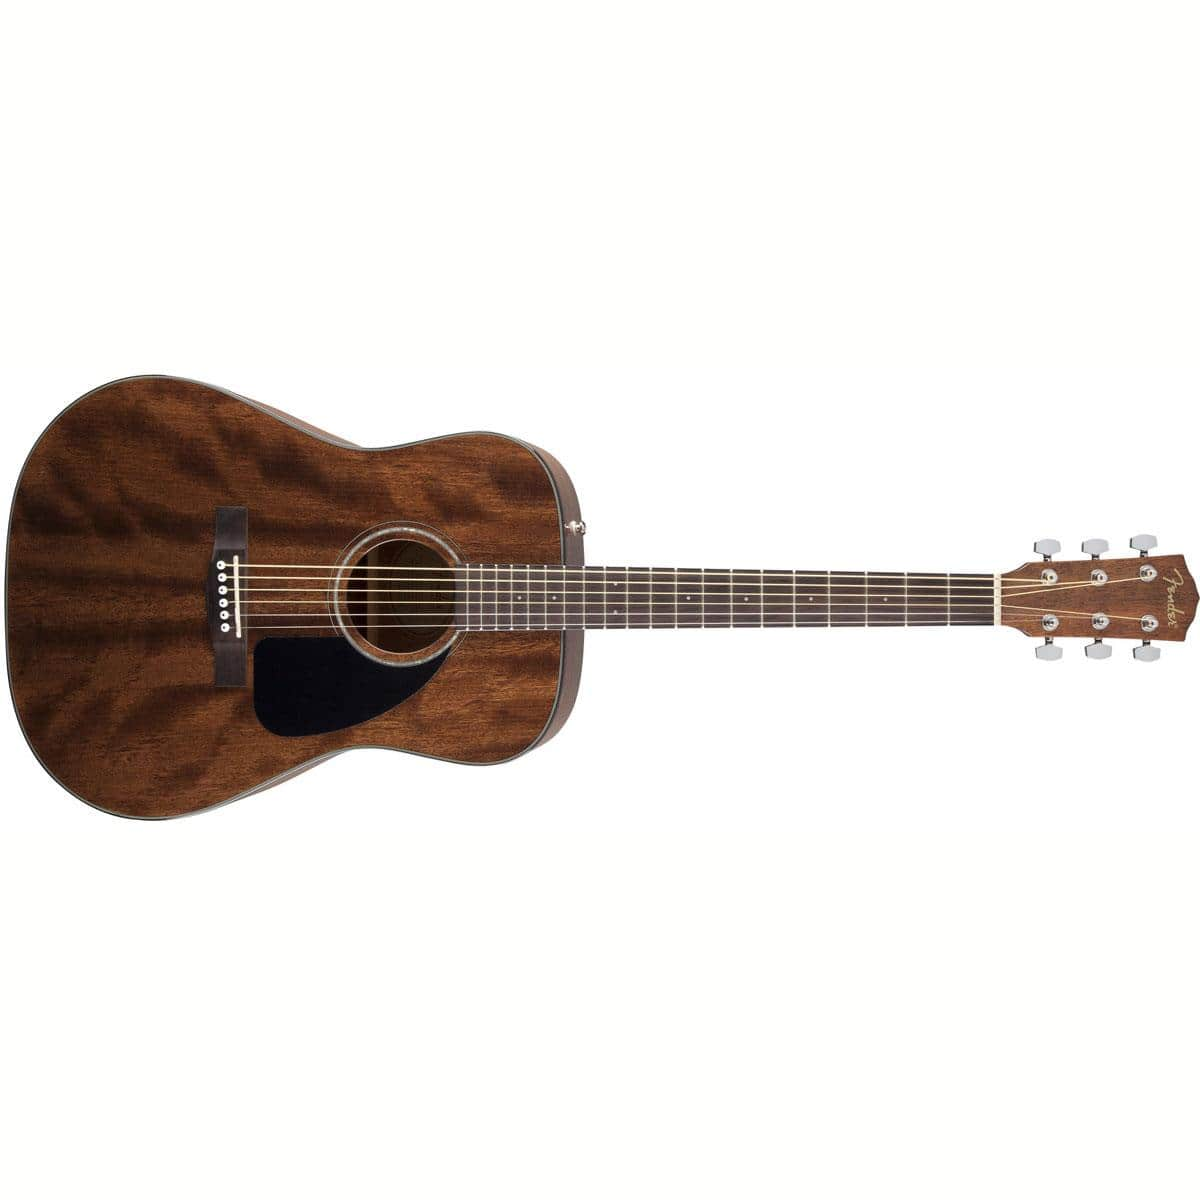 Fender Classic Design CD-60 Guitar $175 or CD-60CE (Acoustic/Electric) Guitar $215 + free shipping